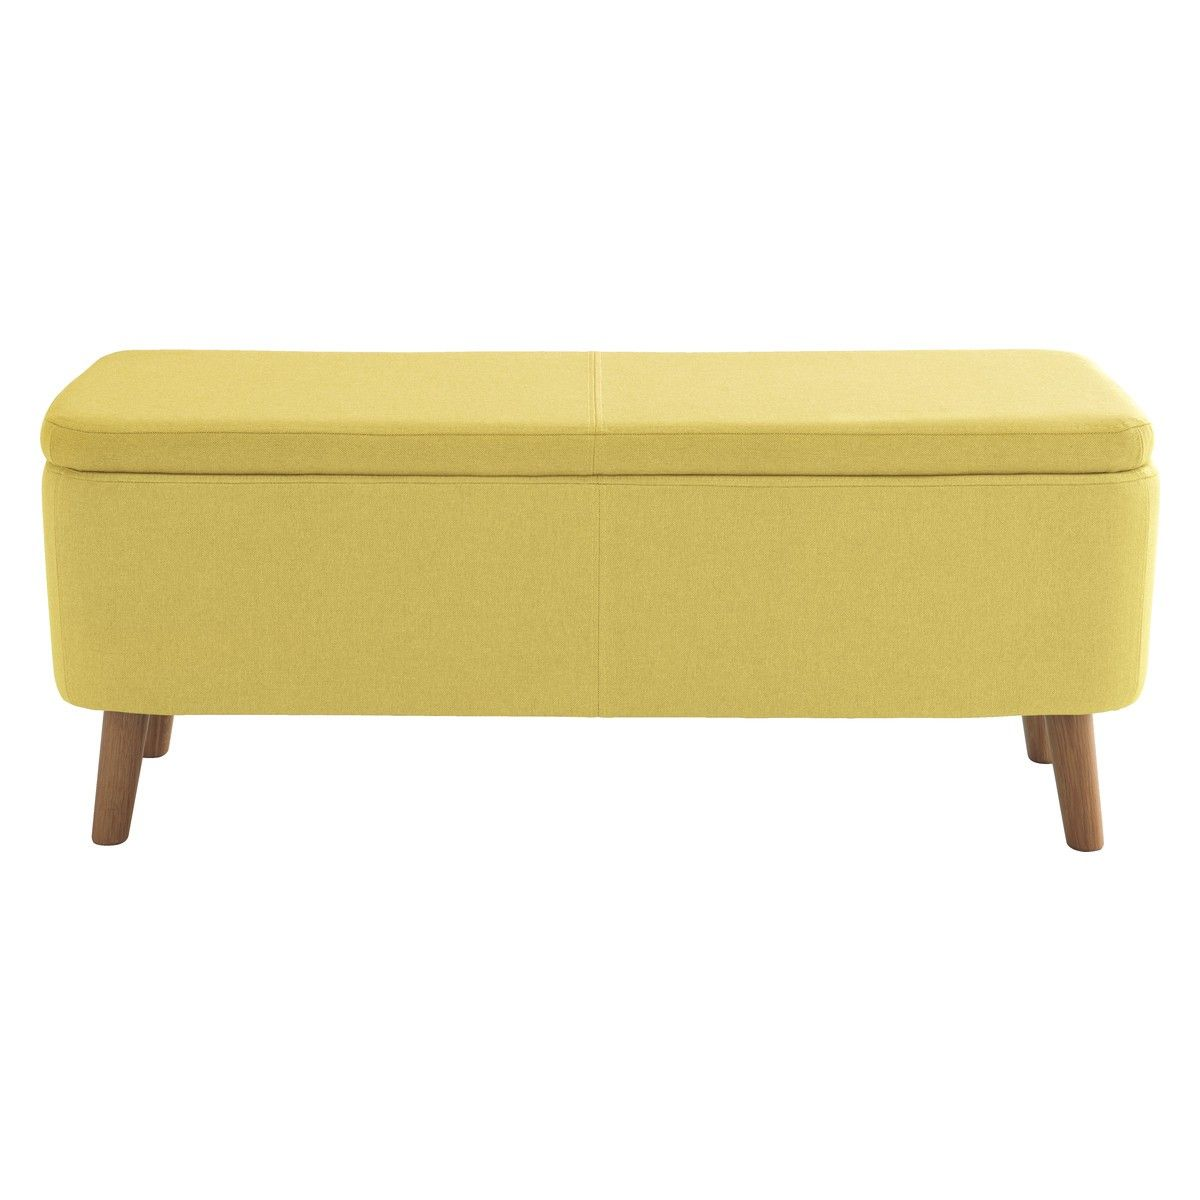 JACOBS Saffron Yellow Upholstered Storage Bench